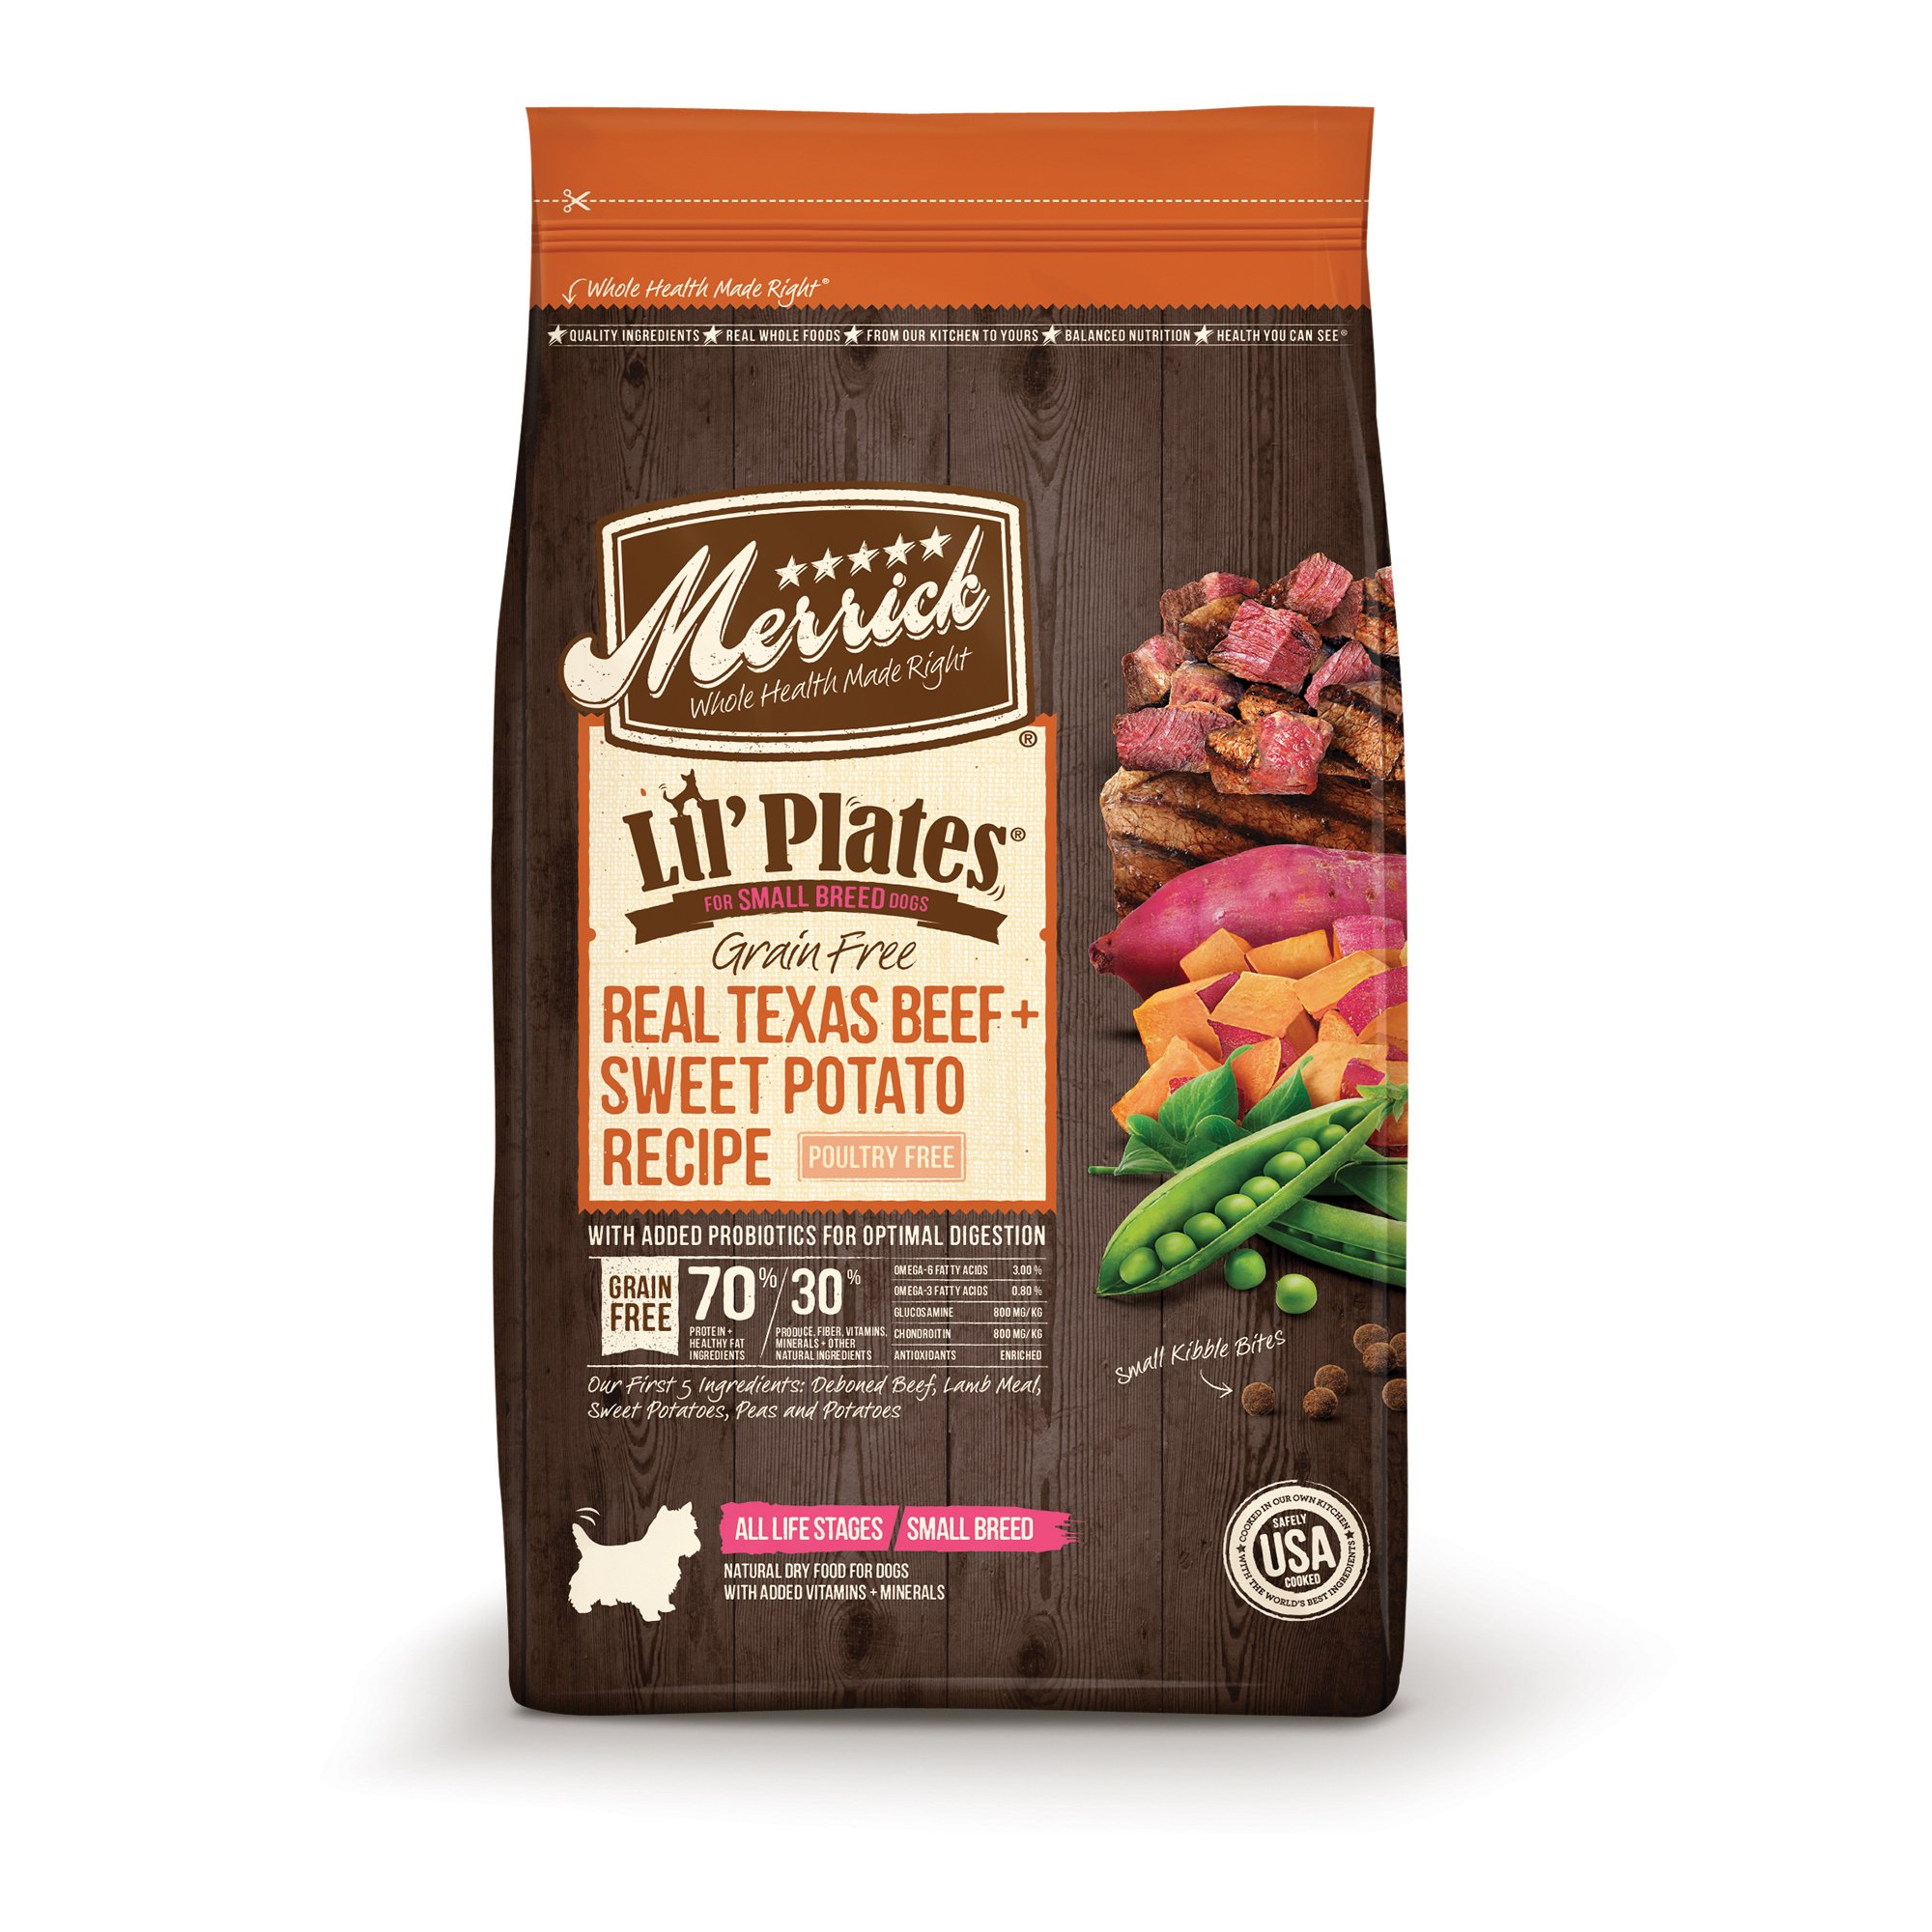 Merrick Lil' Plates Grain Free Real Texas Beef + Sweet Potato Small Breed Dry Dog Food, 20 lbs.